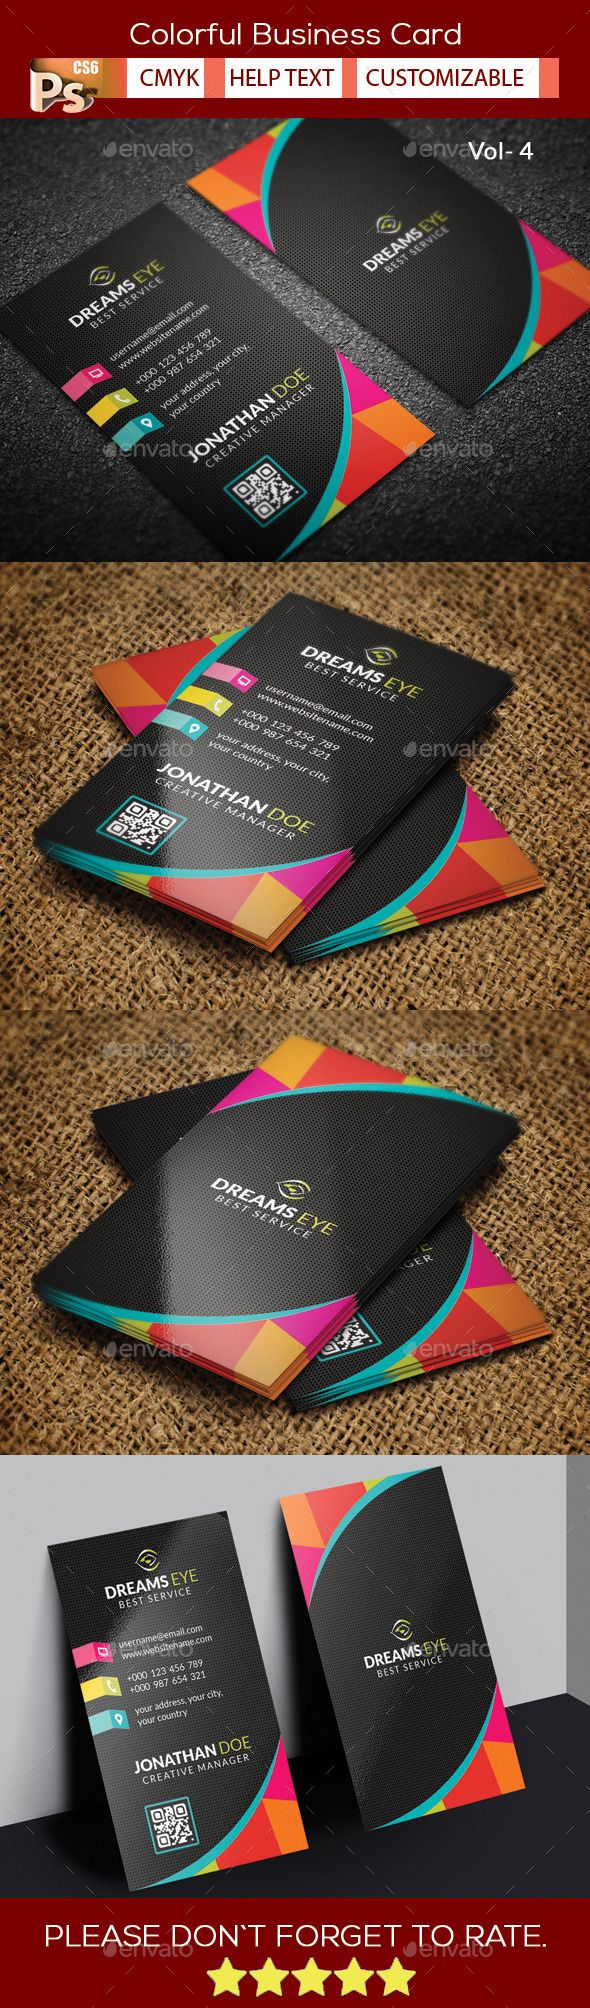 Colorful business card template psd design download http colorful business card template psd design download httpgraphicriver reheart Images